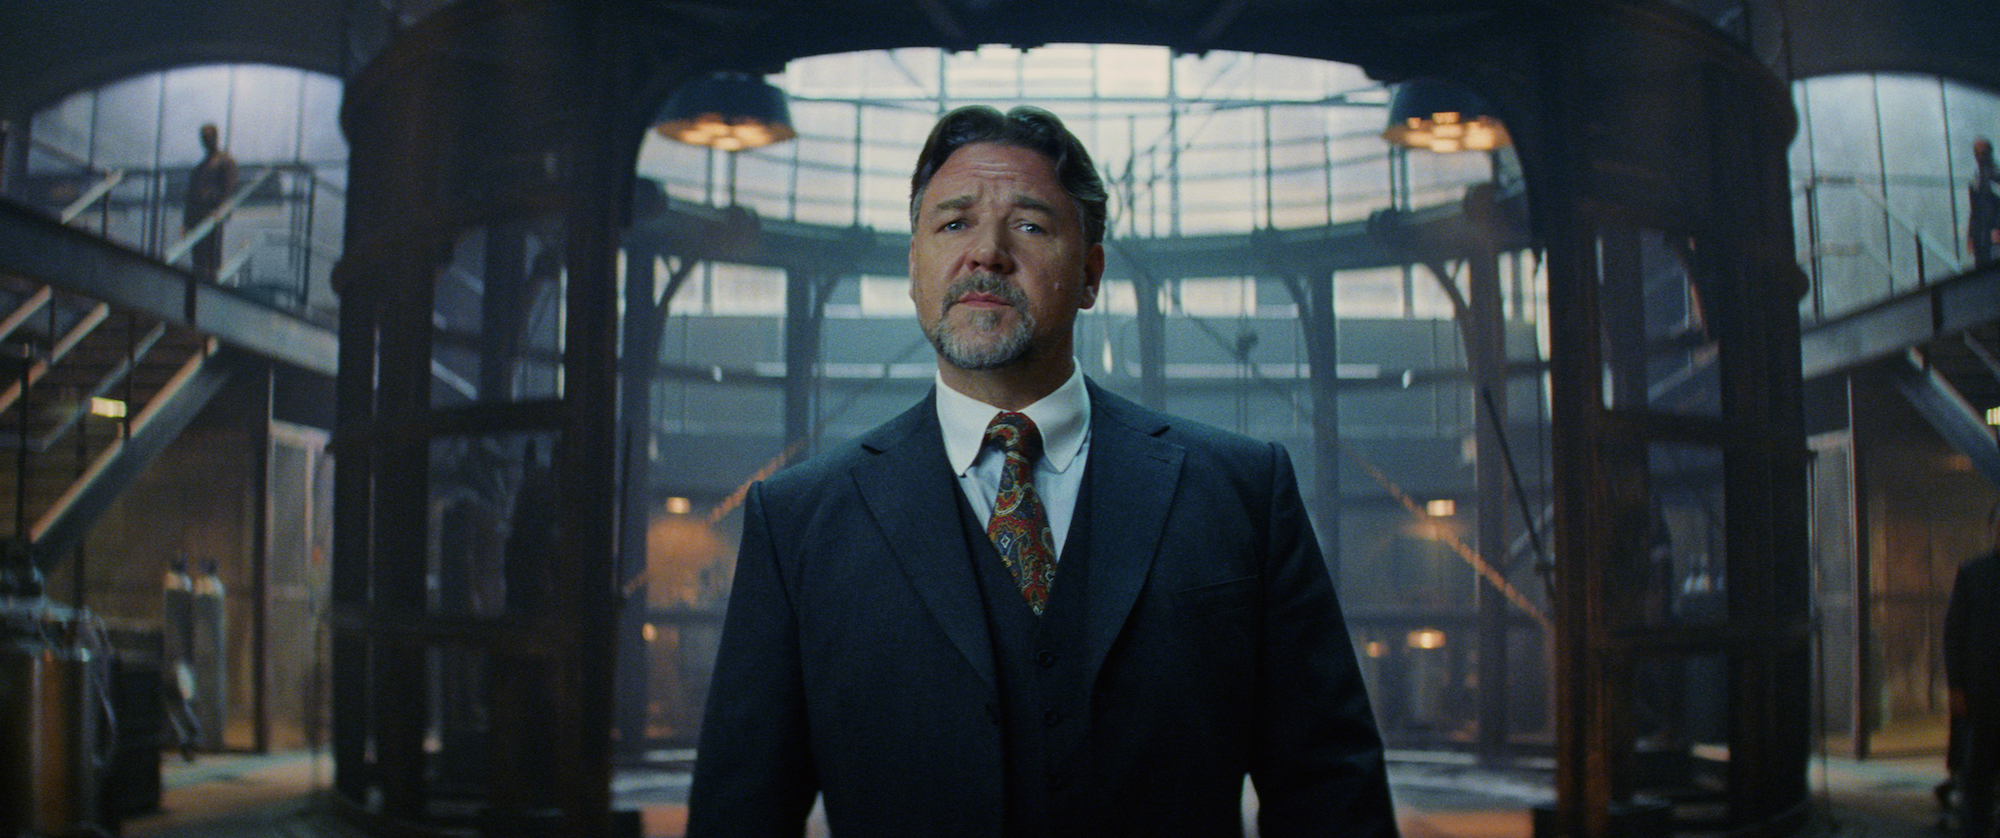 Image result for russell crowe dr jekyll